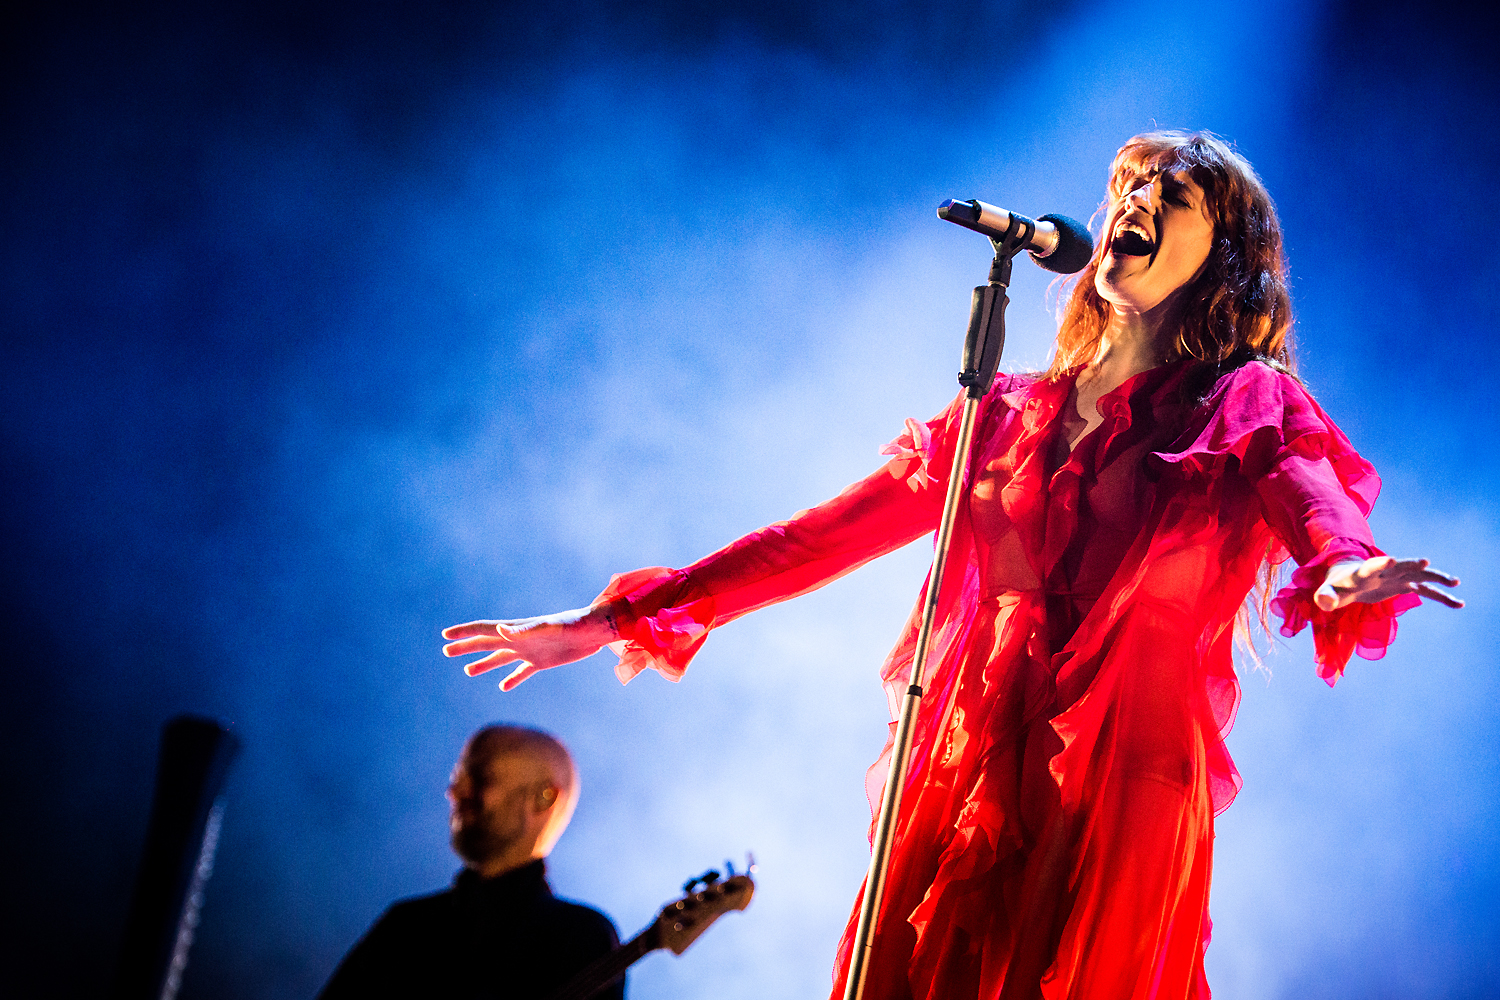 Florence and the Machine @ Rock Werchter 2016 (Jan Van den Bulck)